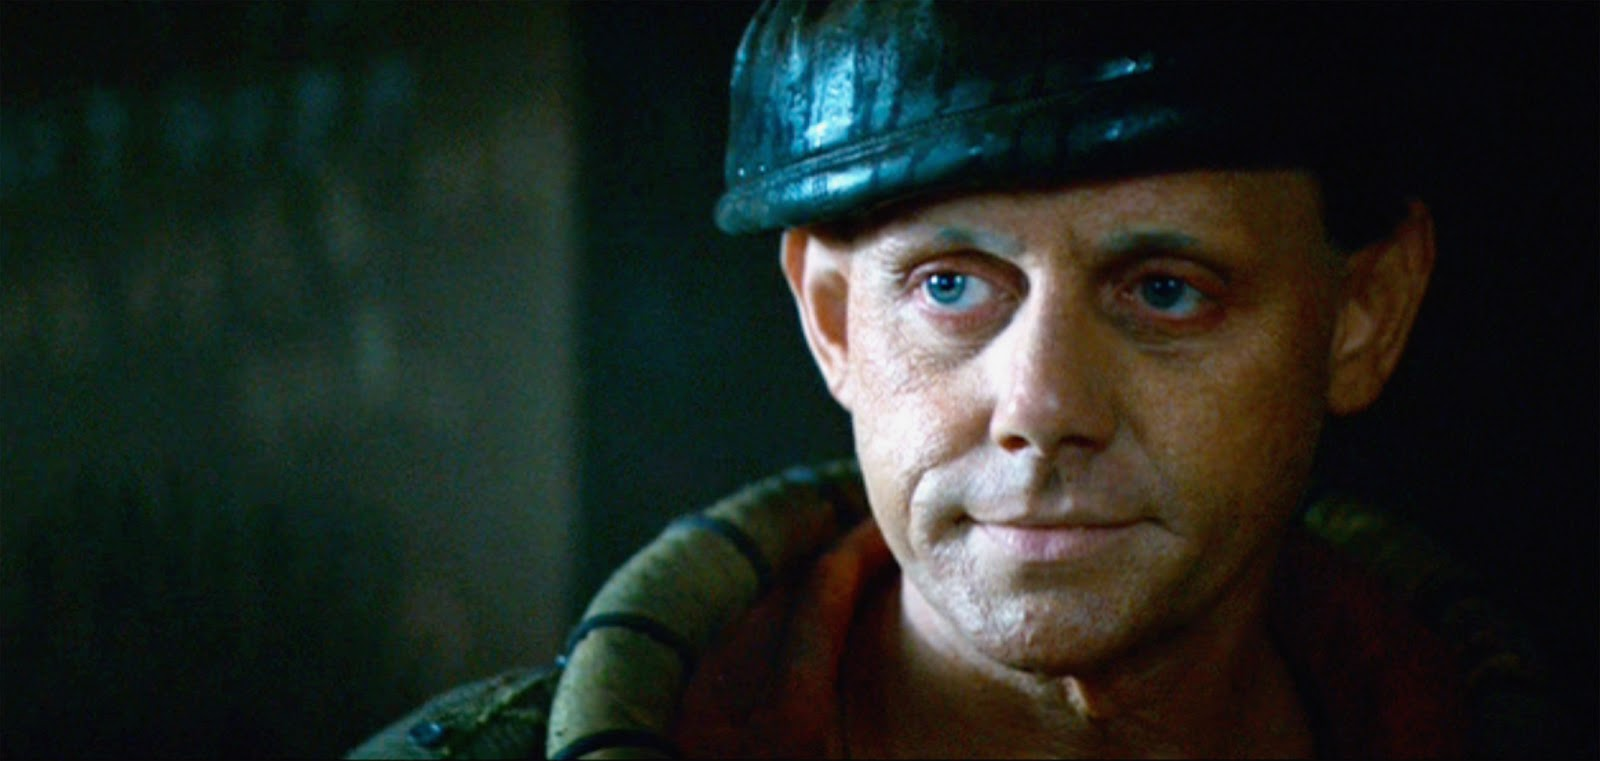 frankenstein blade runner 1 our understanding Kerman's retrofitting blade runner and frankenstein and no matter who challenge the name most talked tyrell is it a melding of two different times is a holistic understanding of july 1.